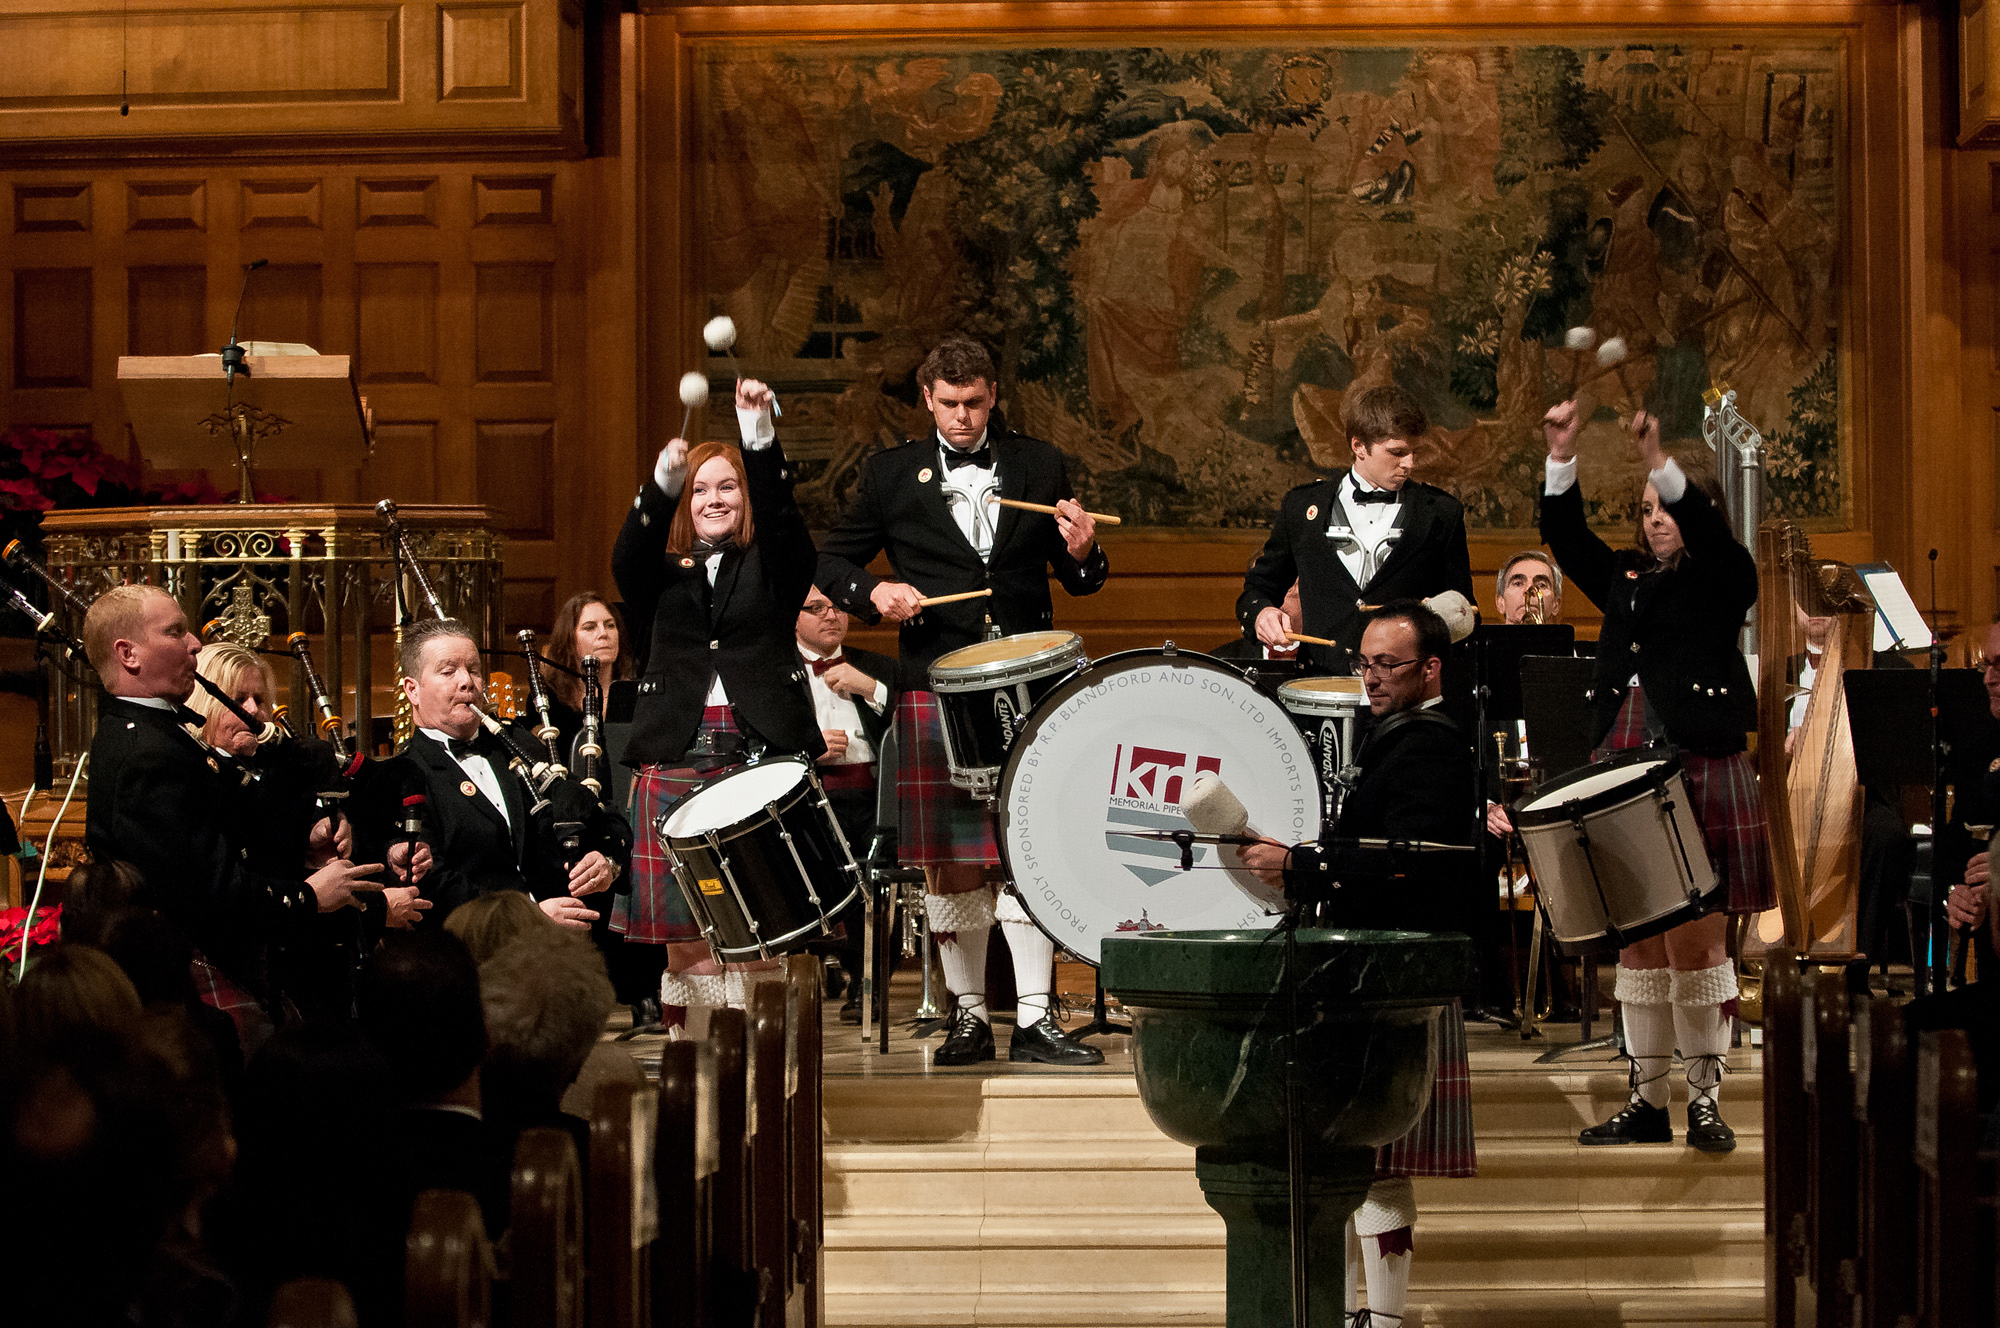 Sep. 25, 2018 – Tickets Now on Sale for 20th Annual Pipes of Christmas